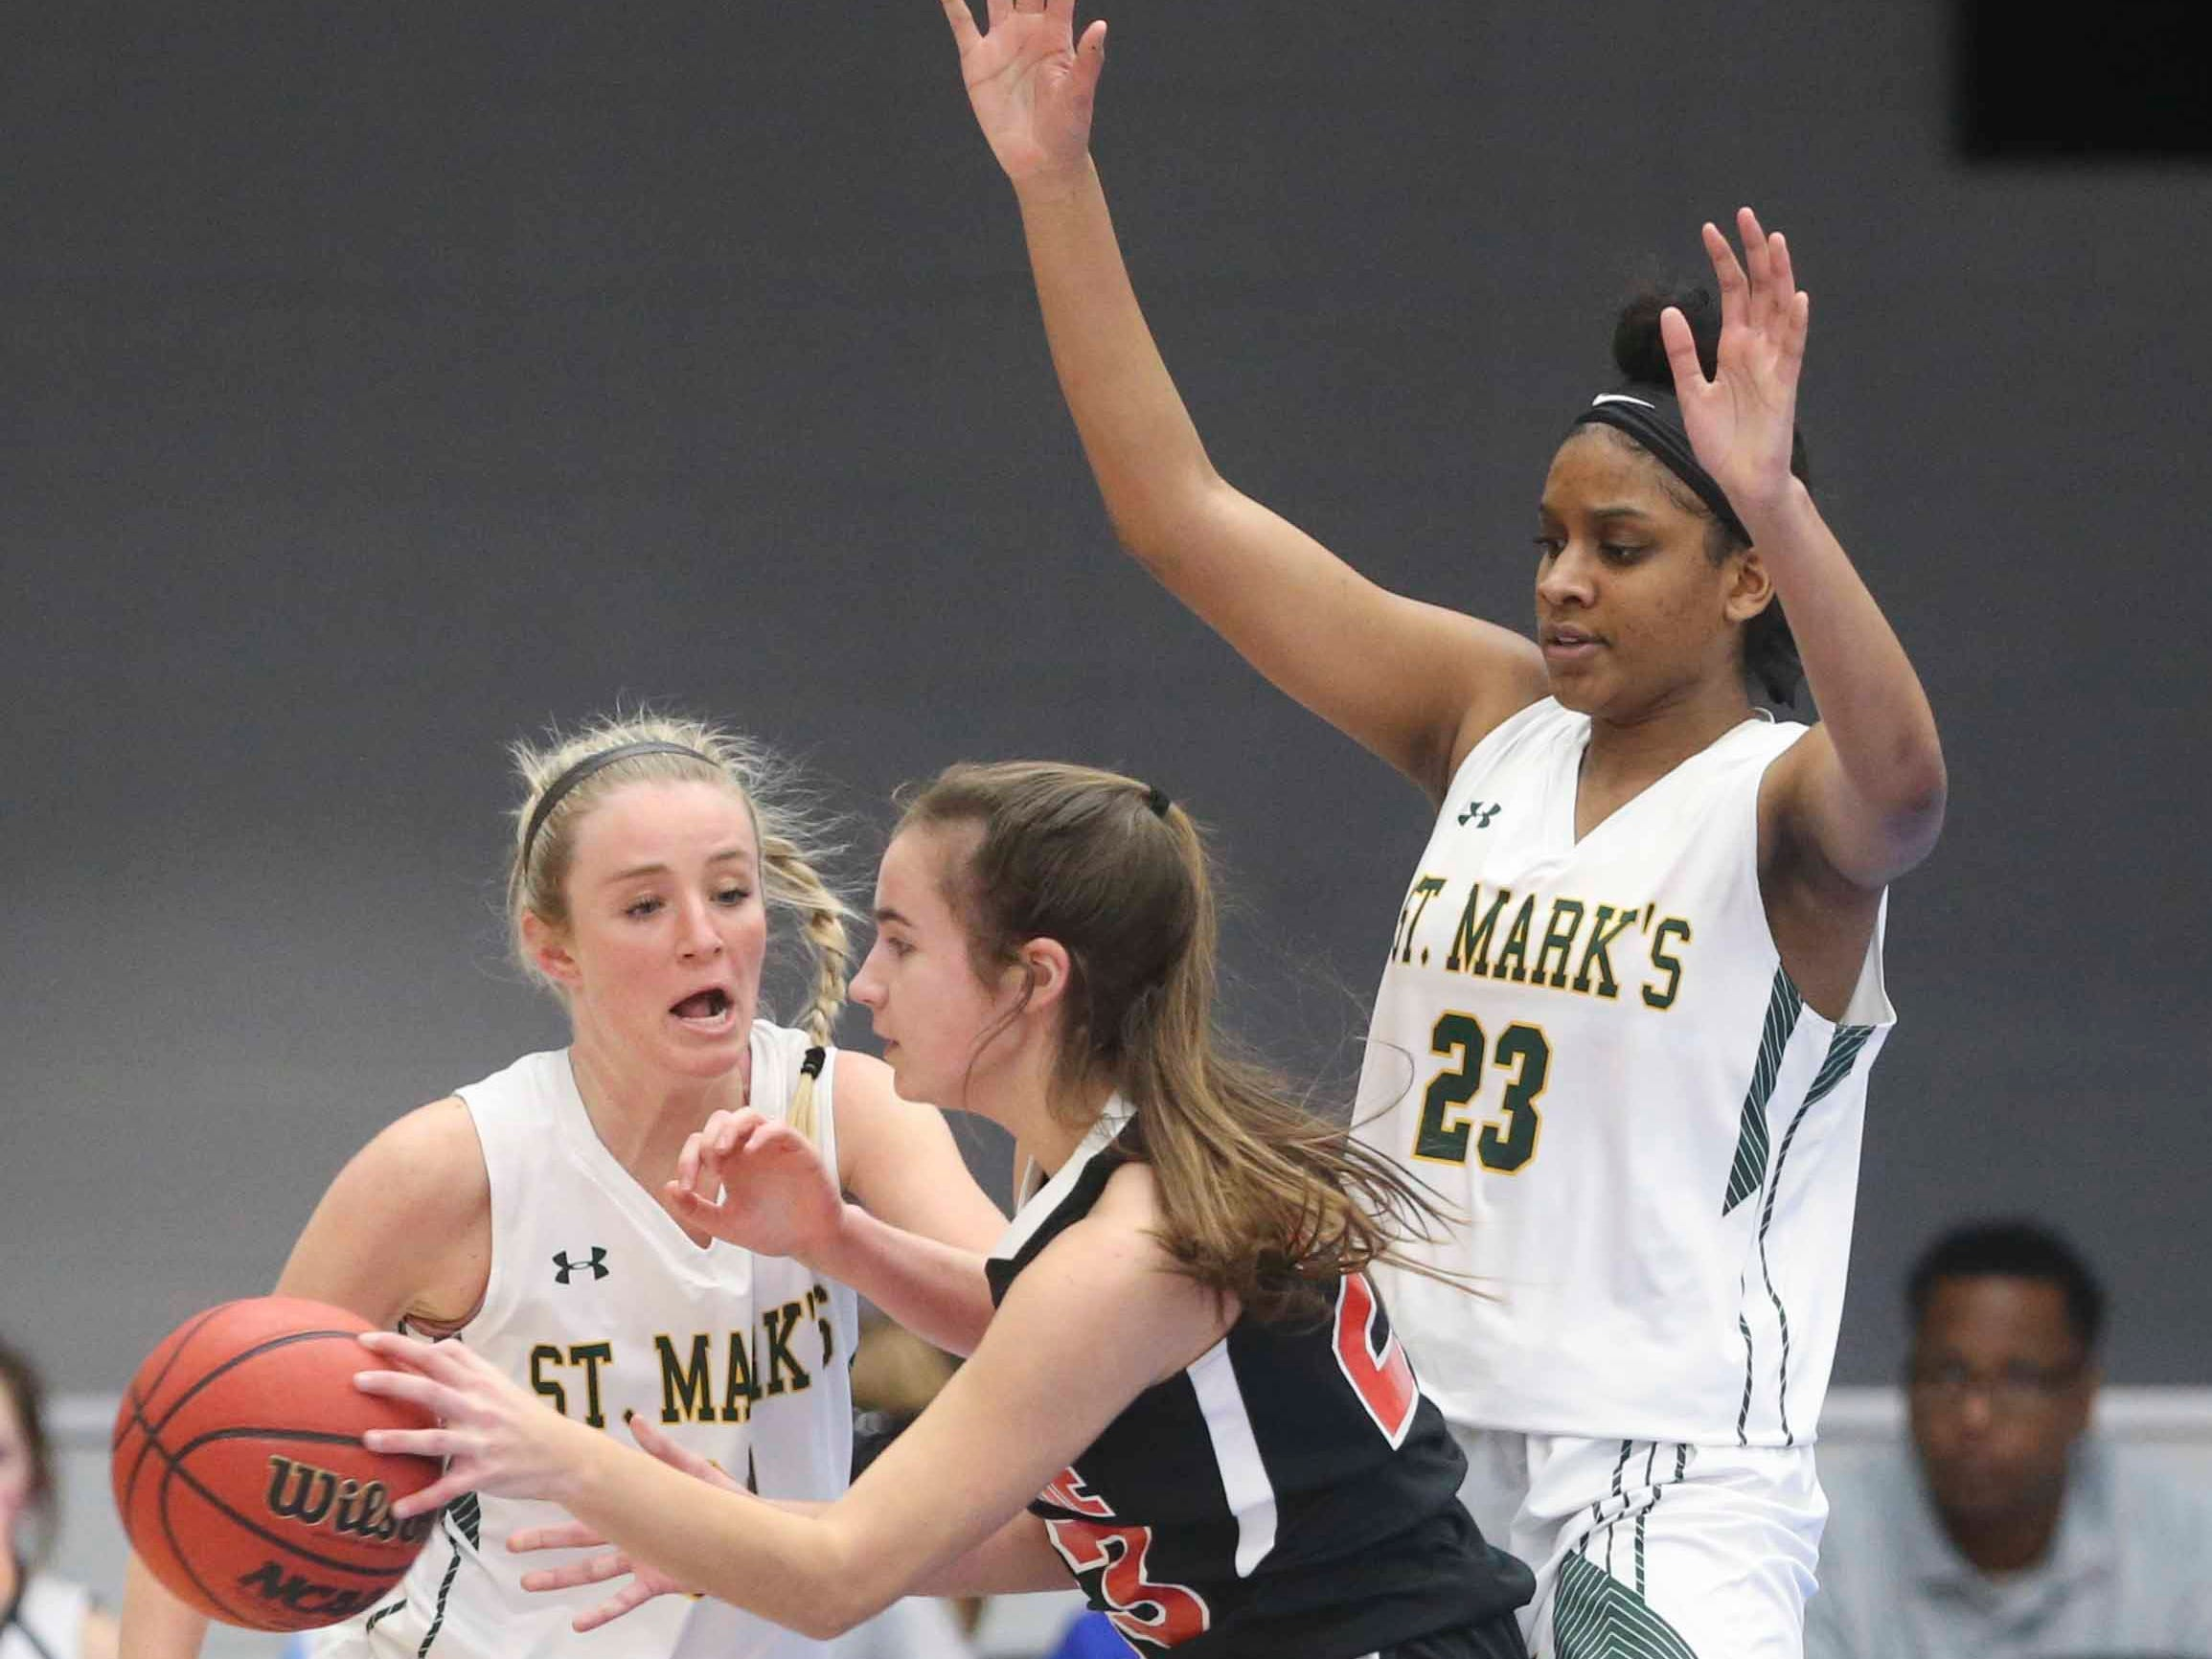 Ursuline's Emma Raftovich works against St. Mark's Lindsey Oberhausen (left) and Aniyah Bond and in the SL24 Memorial Basketball Classic at the 76ers Fieldhouse in Wilmington Friday.